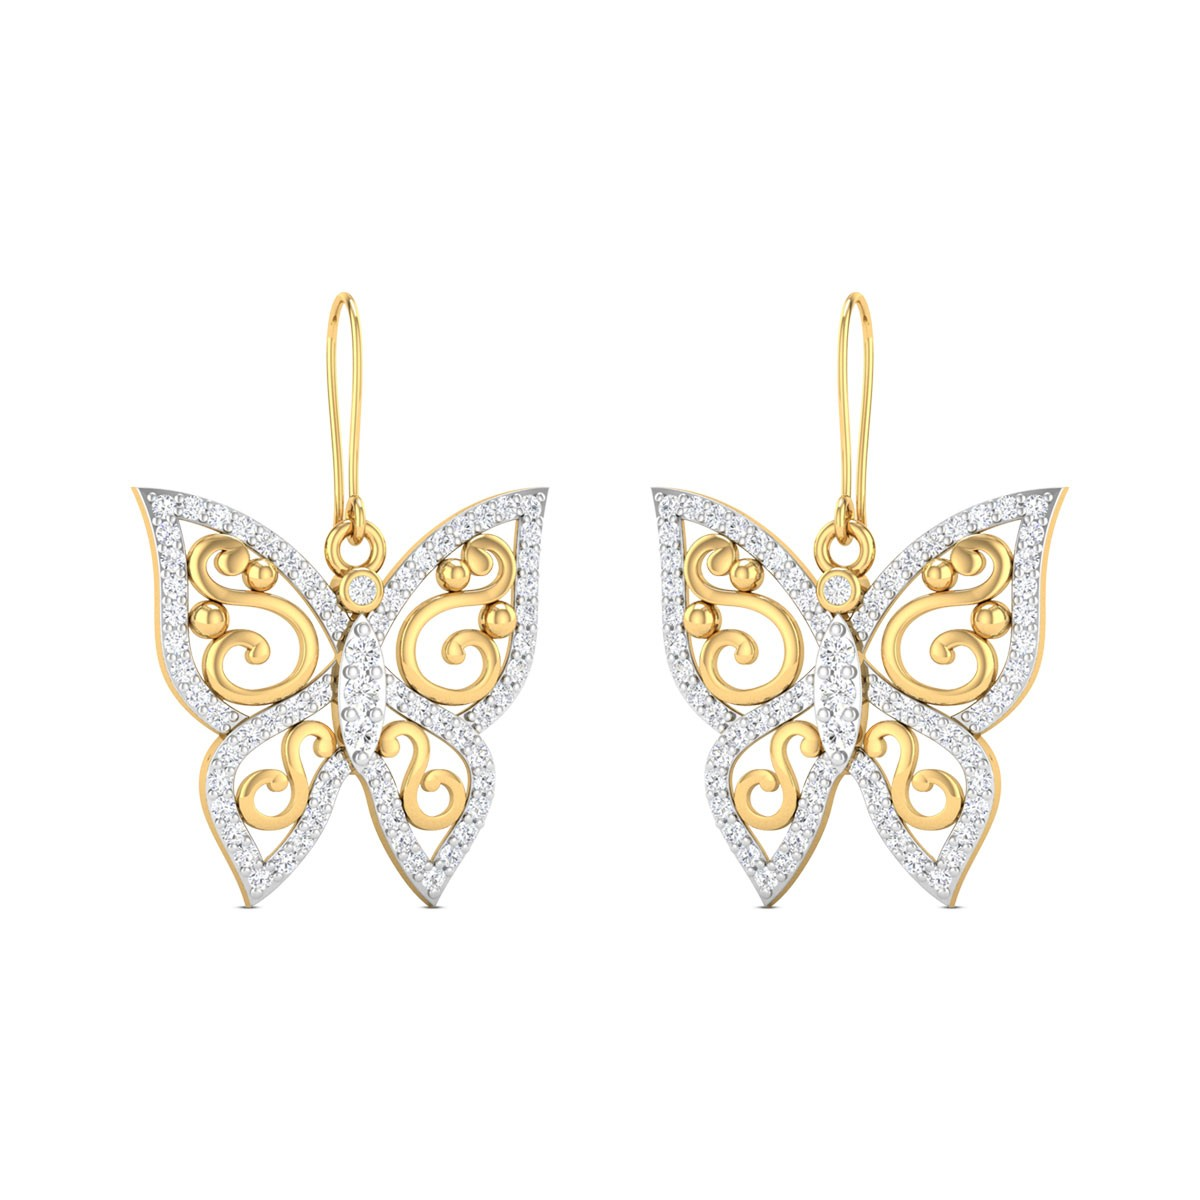 Buy Tess Diamond Earrings in 6.33 Grams Gold Online